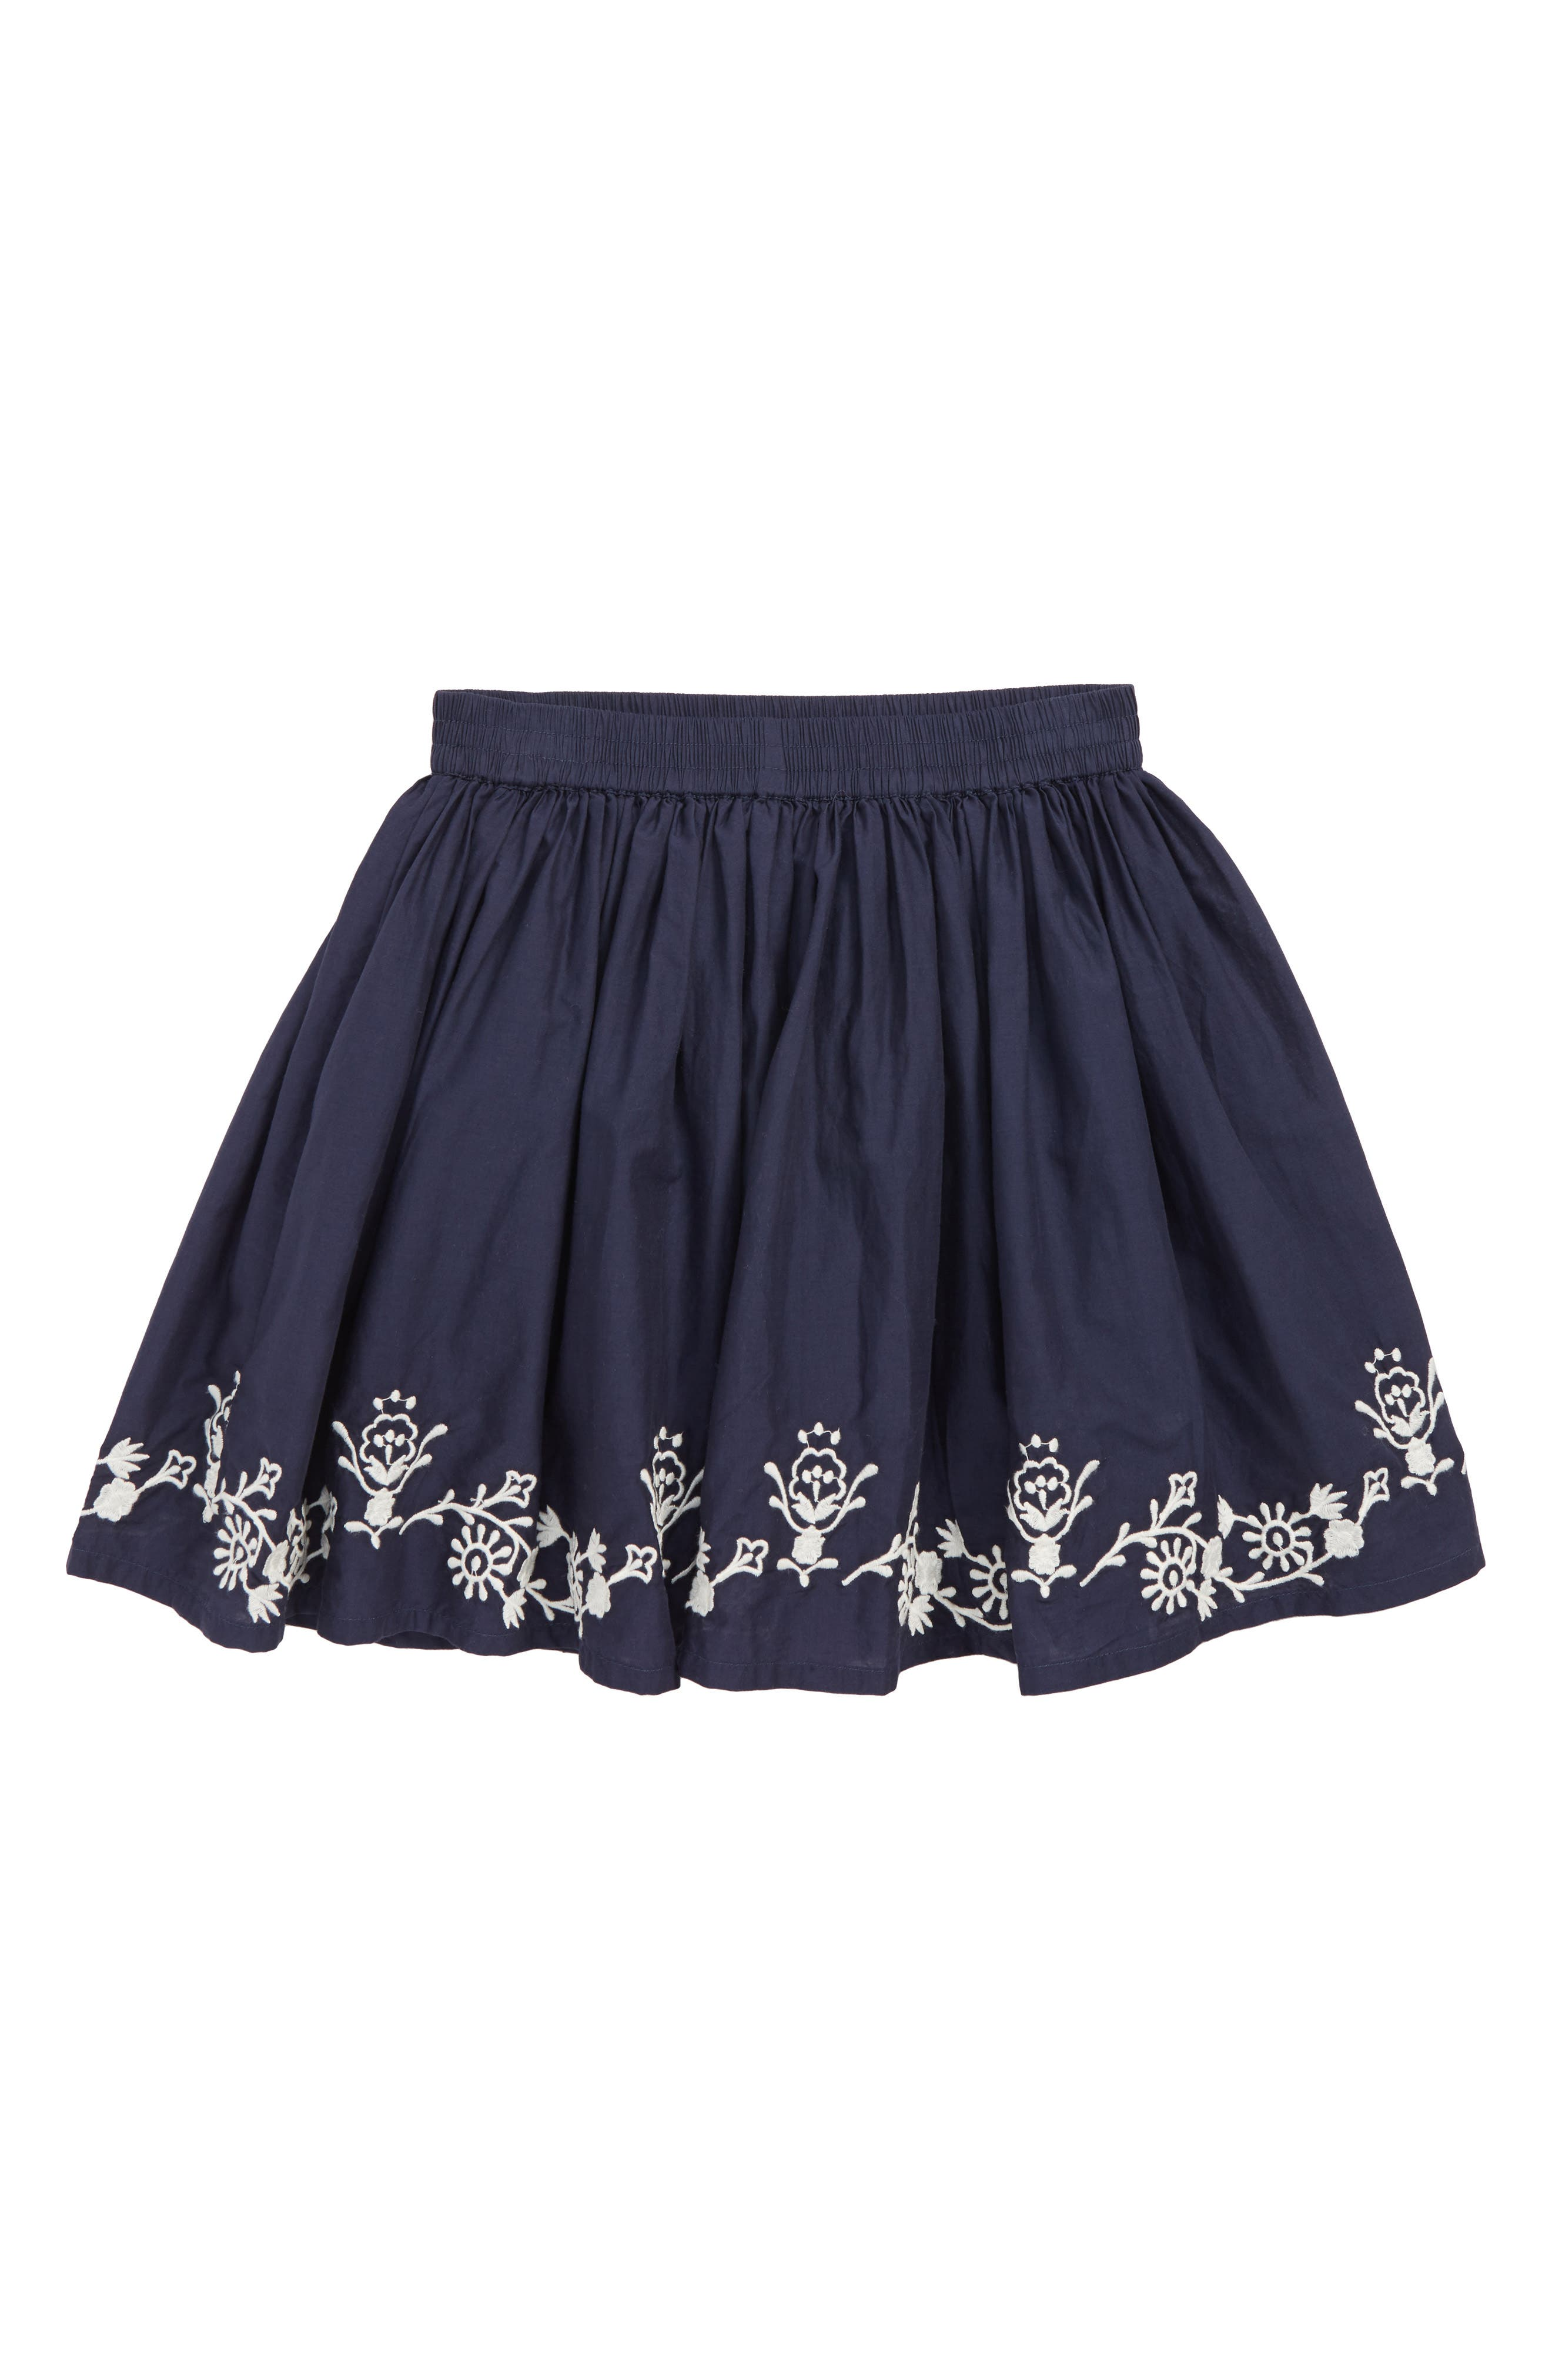 Embroidered Skirt,                             Main thumbnail 1, color,                             NAVY PEACOAT